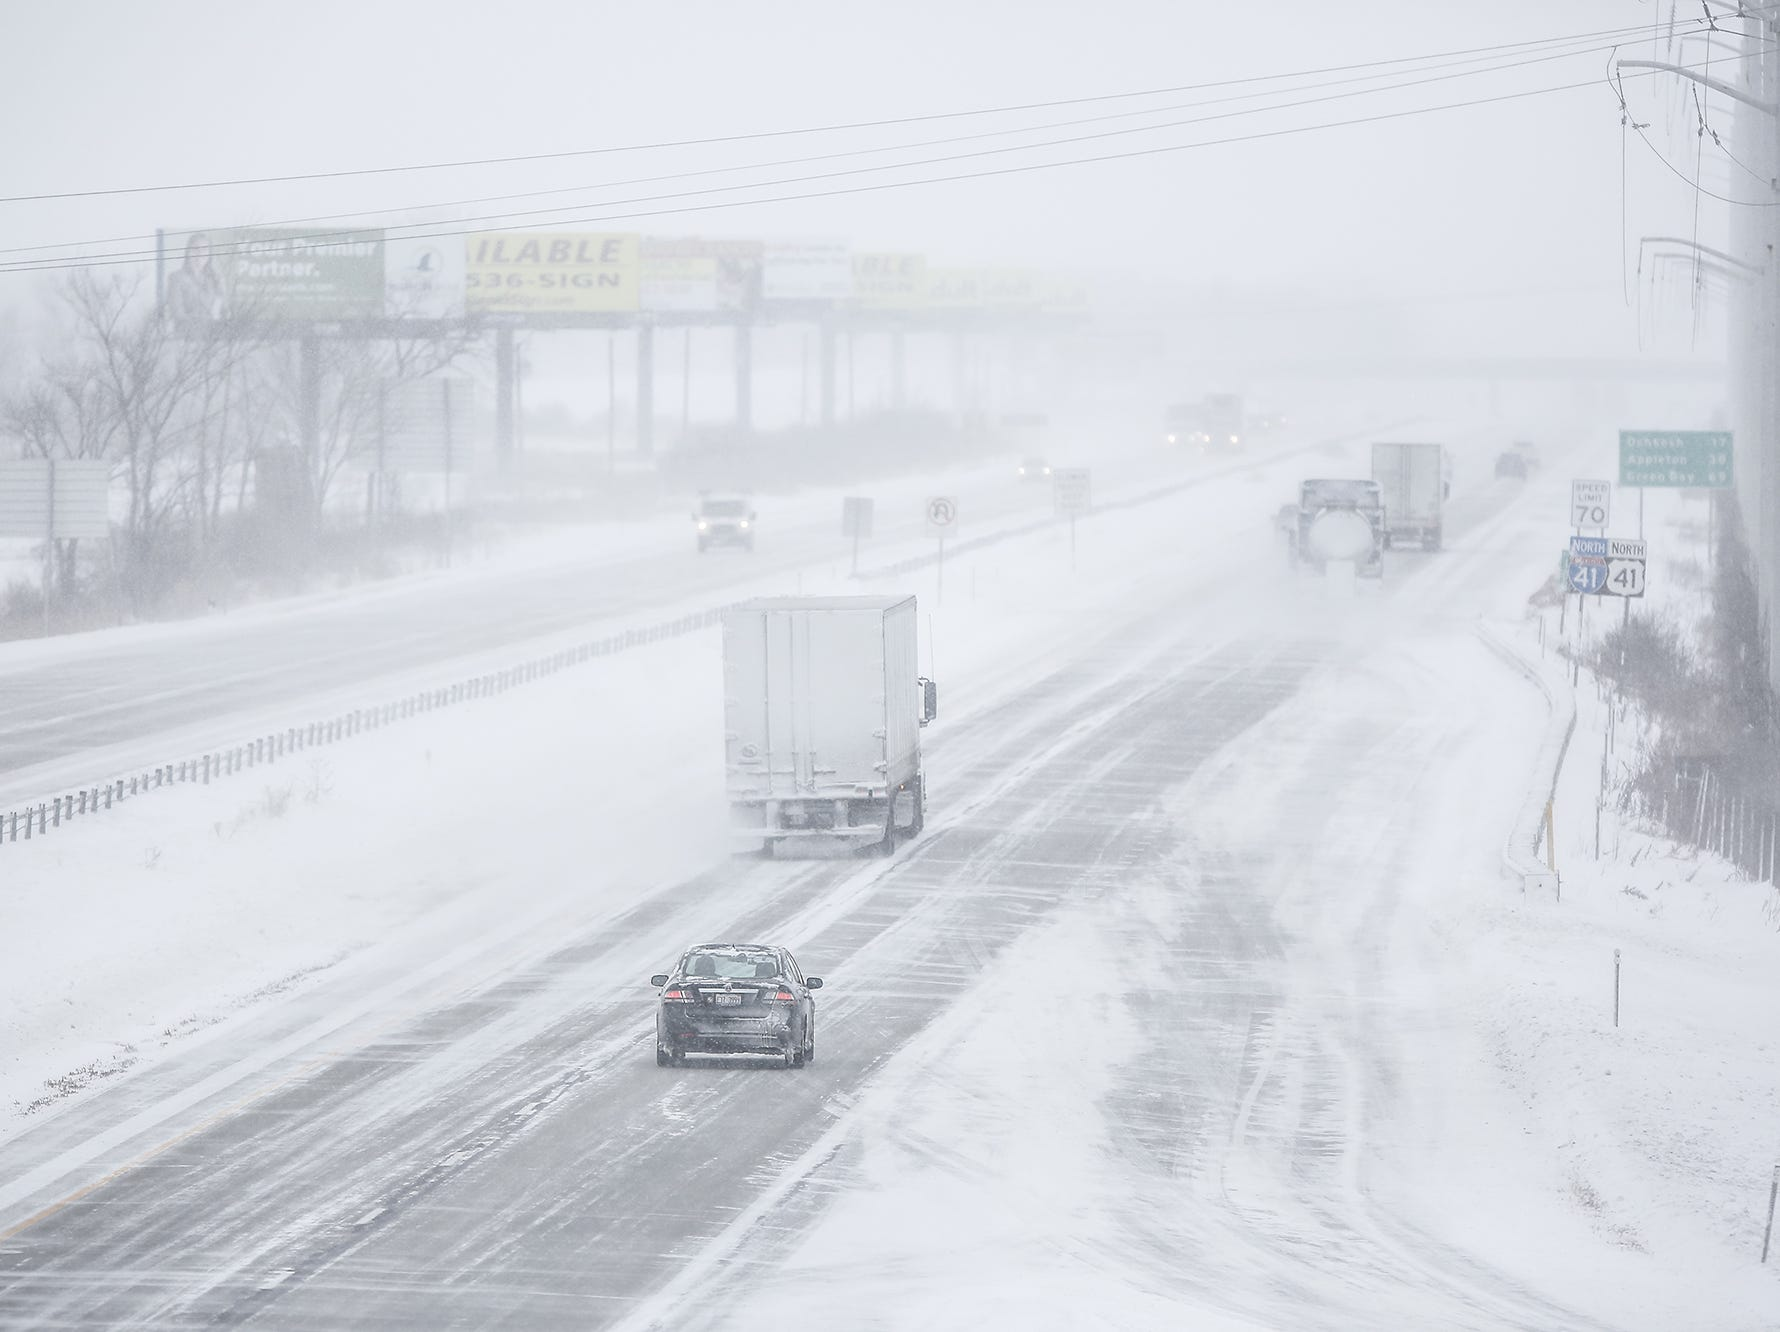 Cars and trucks travel on a snow covered I-41 Monday, Jan. 28, 2019, in Fond du Lac County during a snow storm that hampered travel and closed businesses and schools in the Fond du Lac area. This was the Fond du Lac area's second snow storm in five days.